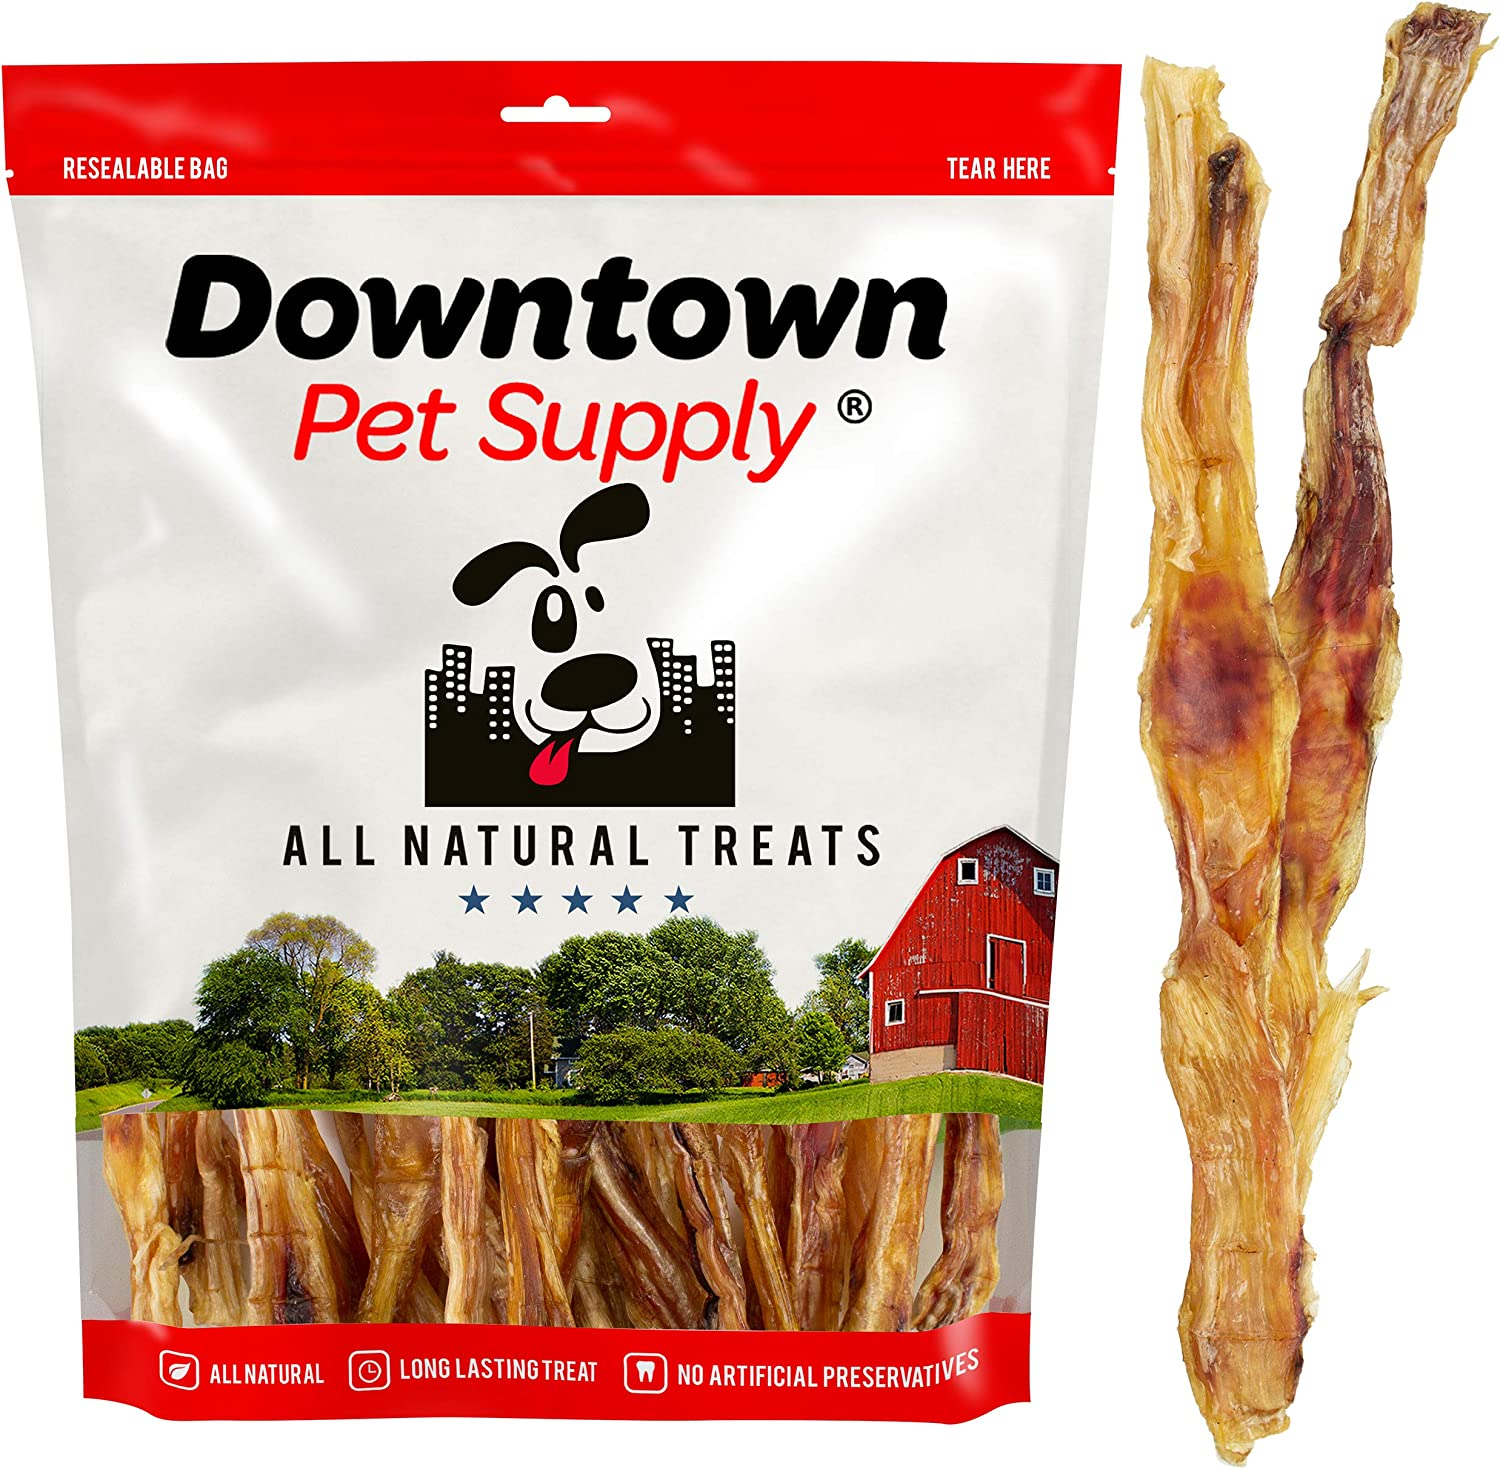 Downtown Pet Supply Natural Beef Tendons, Single Ingredient, Alternative to Bully Sticks, Healthy Dog Treats, 9 inch - 12 inch Long (25 Pack)